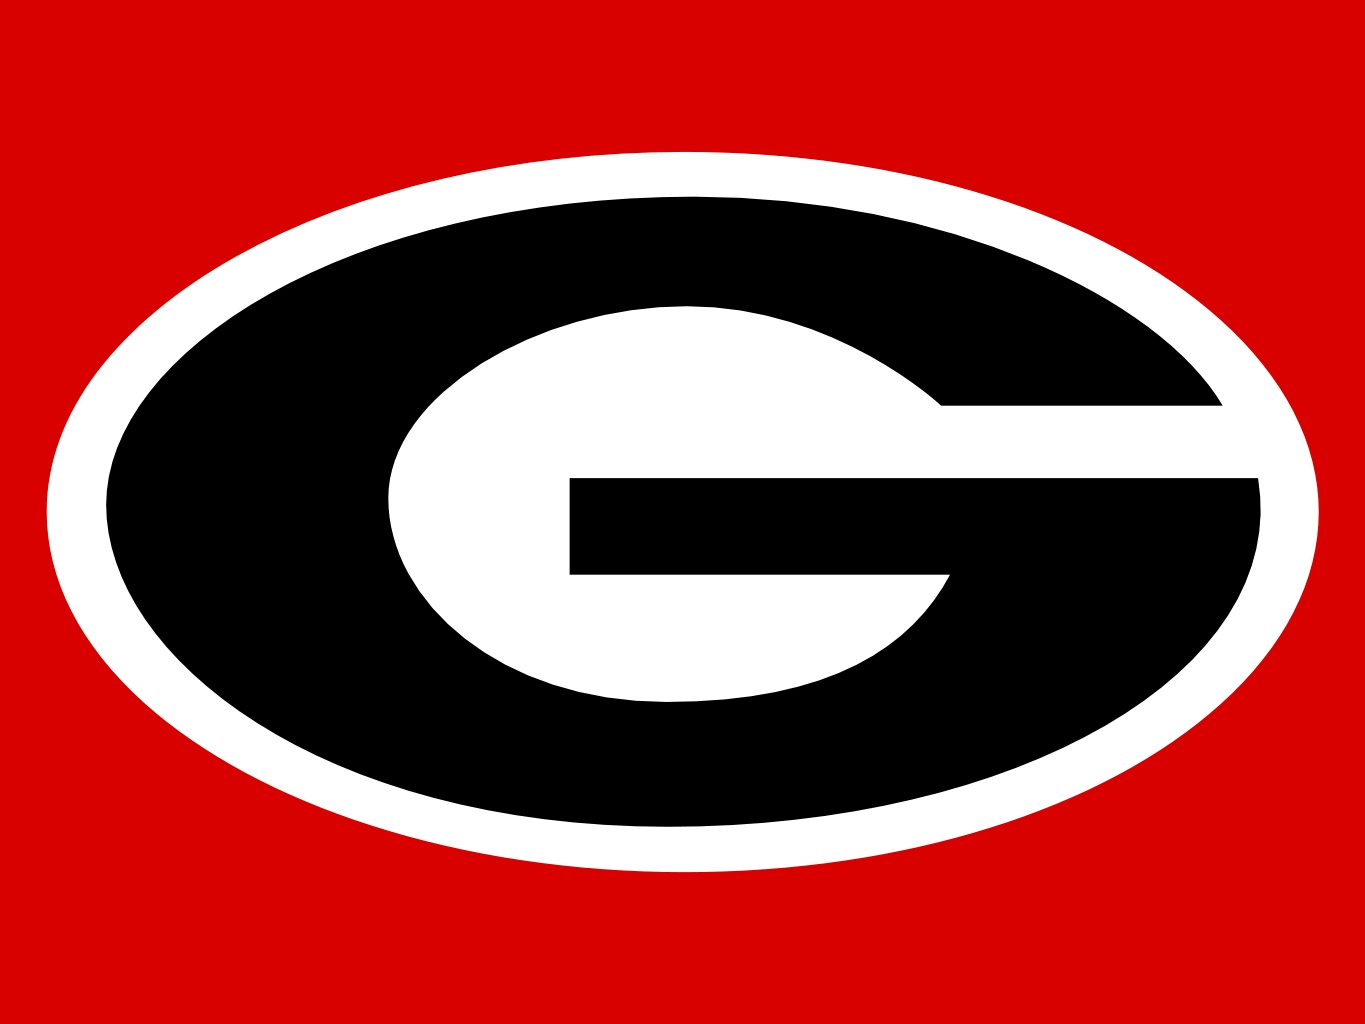 uga wallpaper desktop